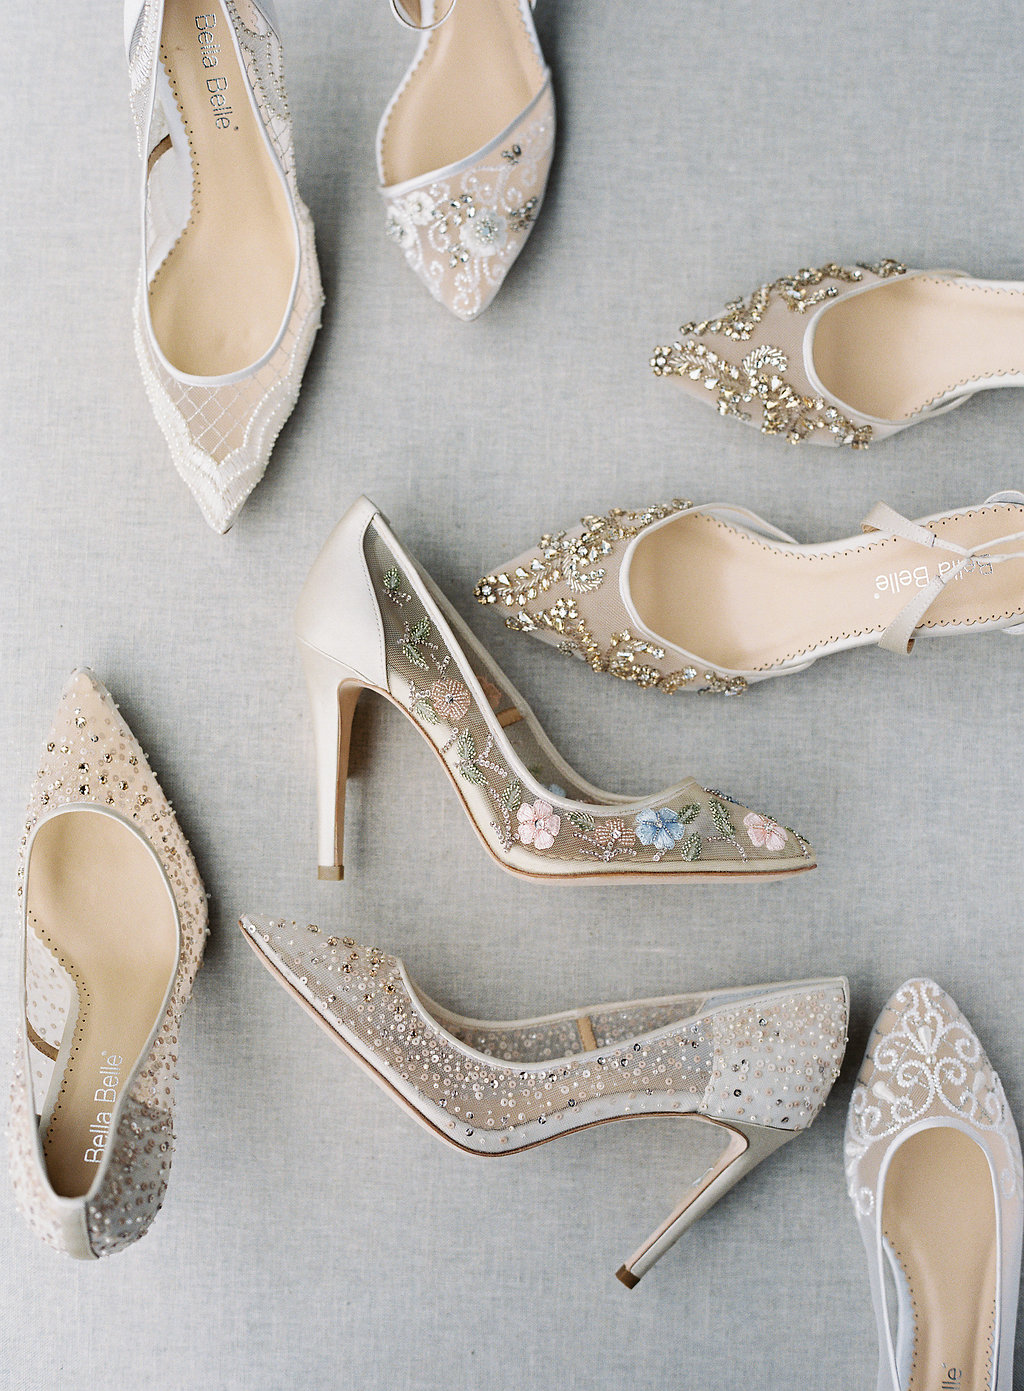 fbe2eeadf The Shoe Brand that Our Market Editor Will Be Wearing On Her Wedding ...